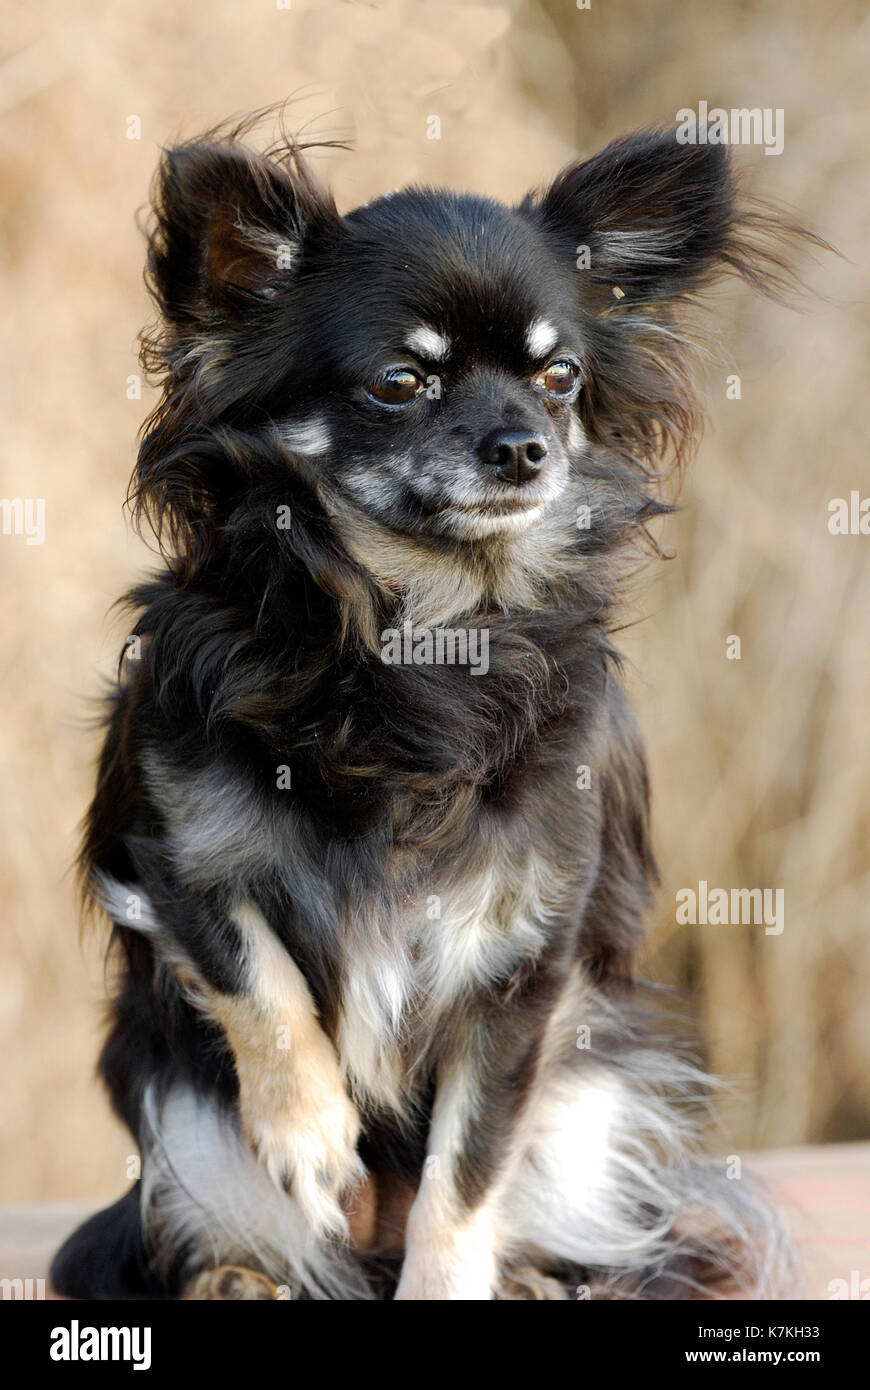 Cute puppy dog, a long-haired chihuahua, black, brown and caramel long coat - Stock Image